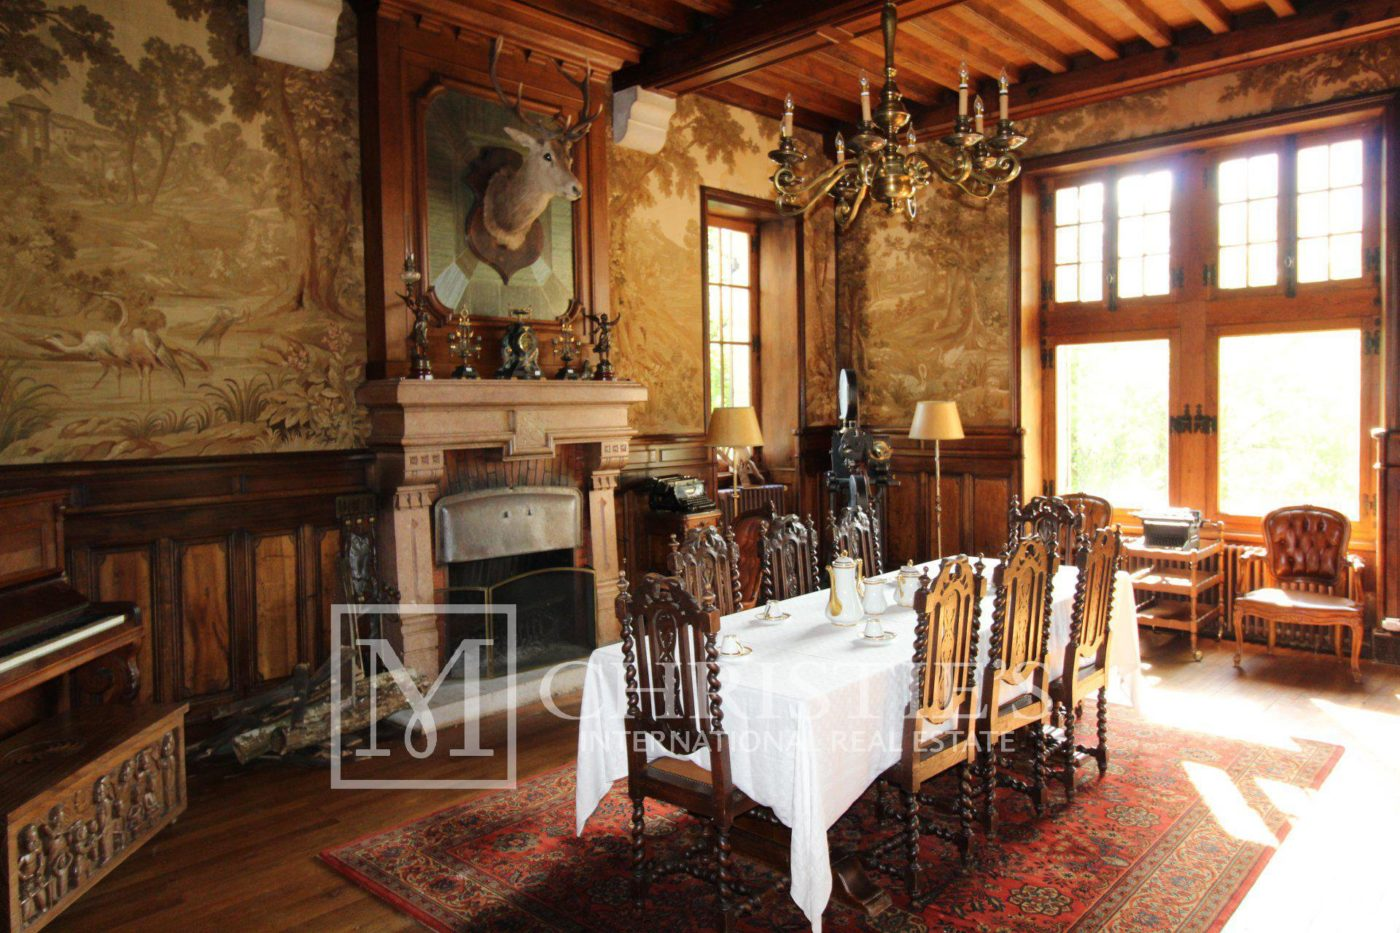 Dining room, Wood floors, Fireplace - Magnificent vineyard estate with historic Château in AOC Bordeaux